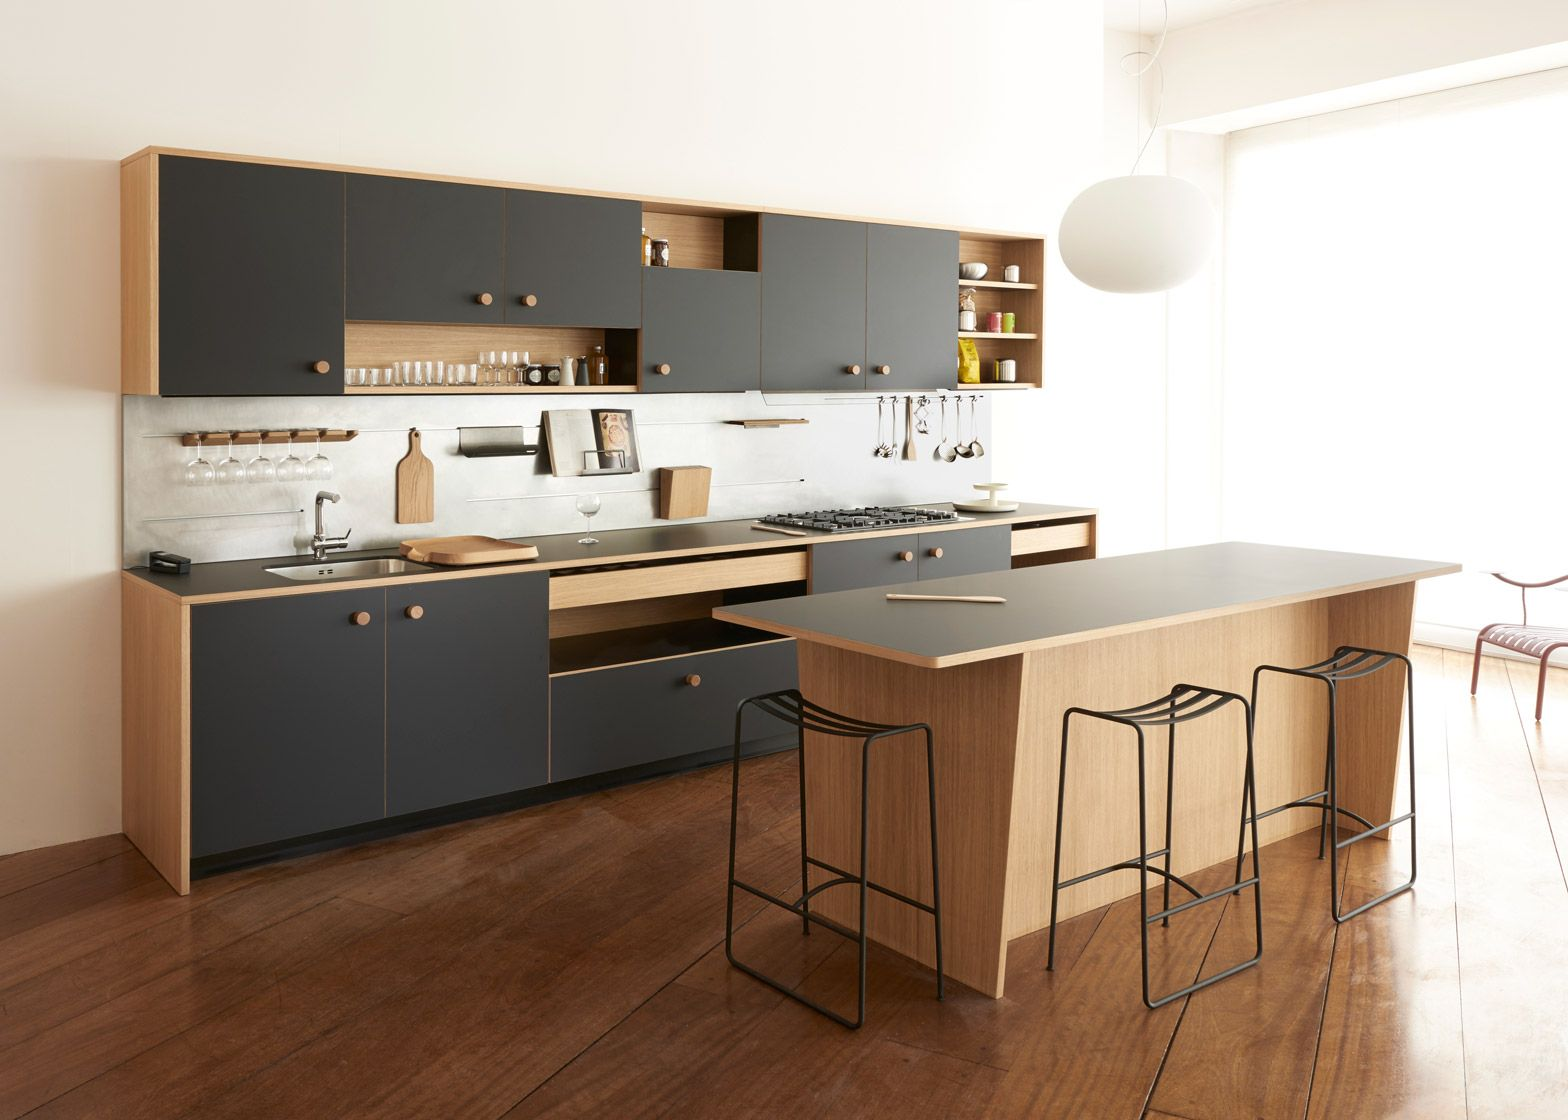 Küche interieur farbschemata jasper morrison reveals first kitchen design for schiffini  laminat